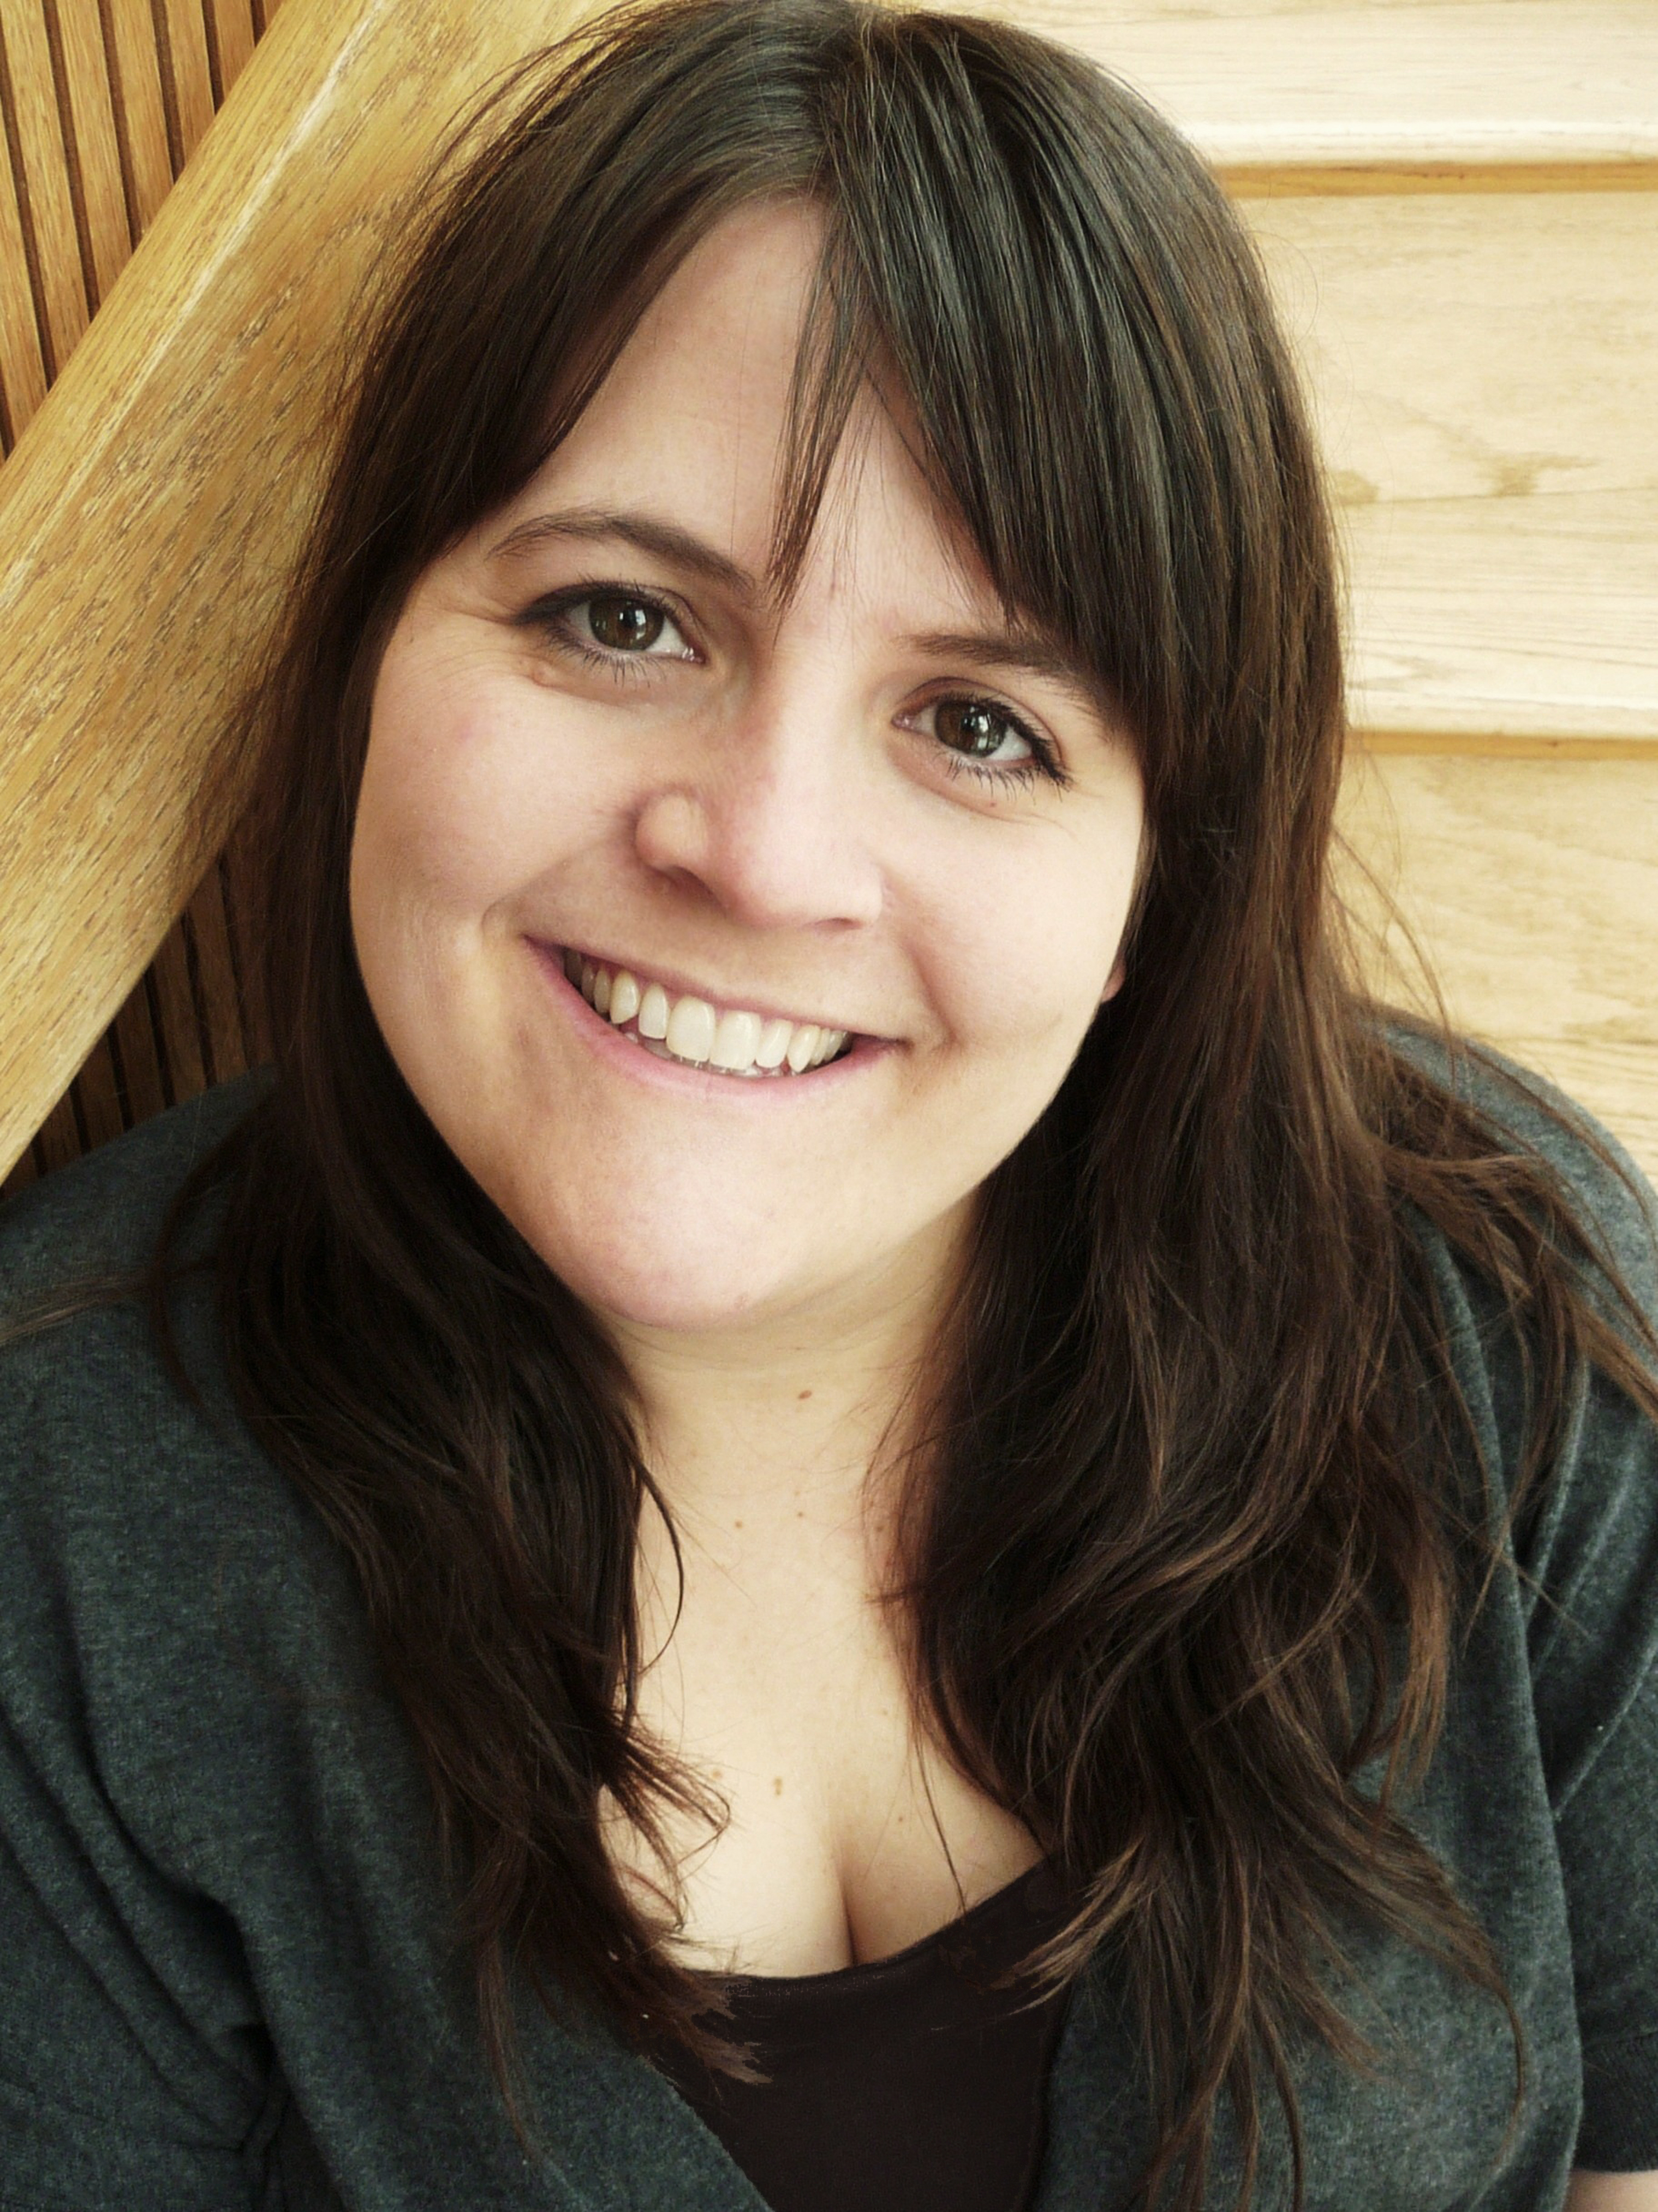 Filmmaker and Moscow native Megan Griffiths reaping awards on the indie movie circuit